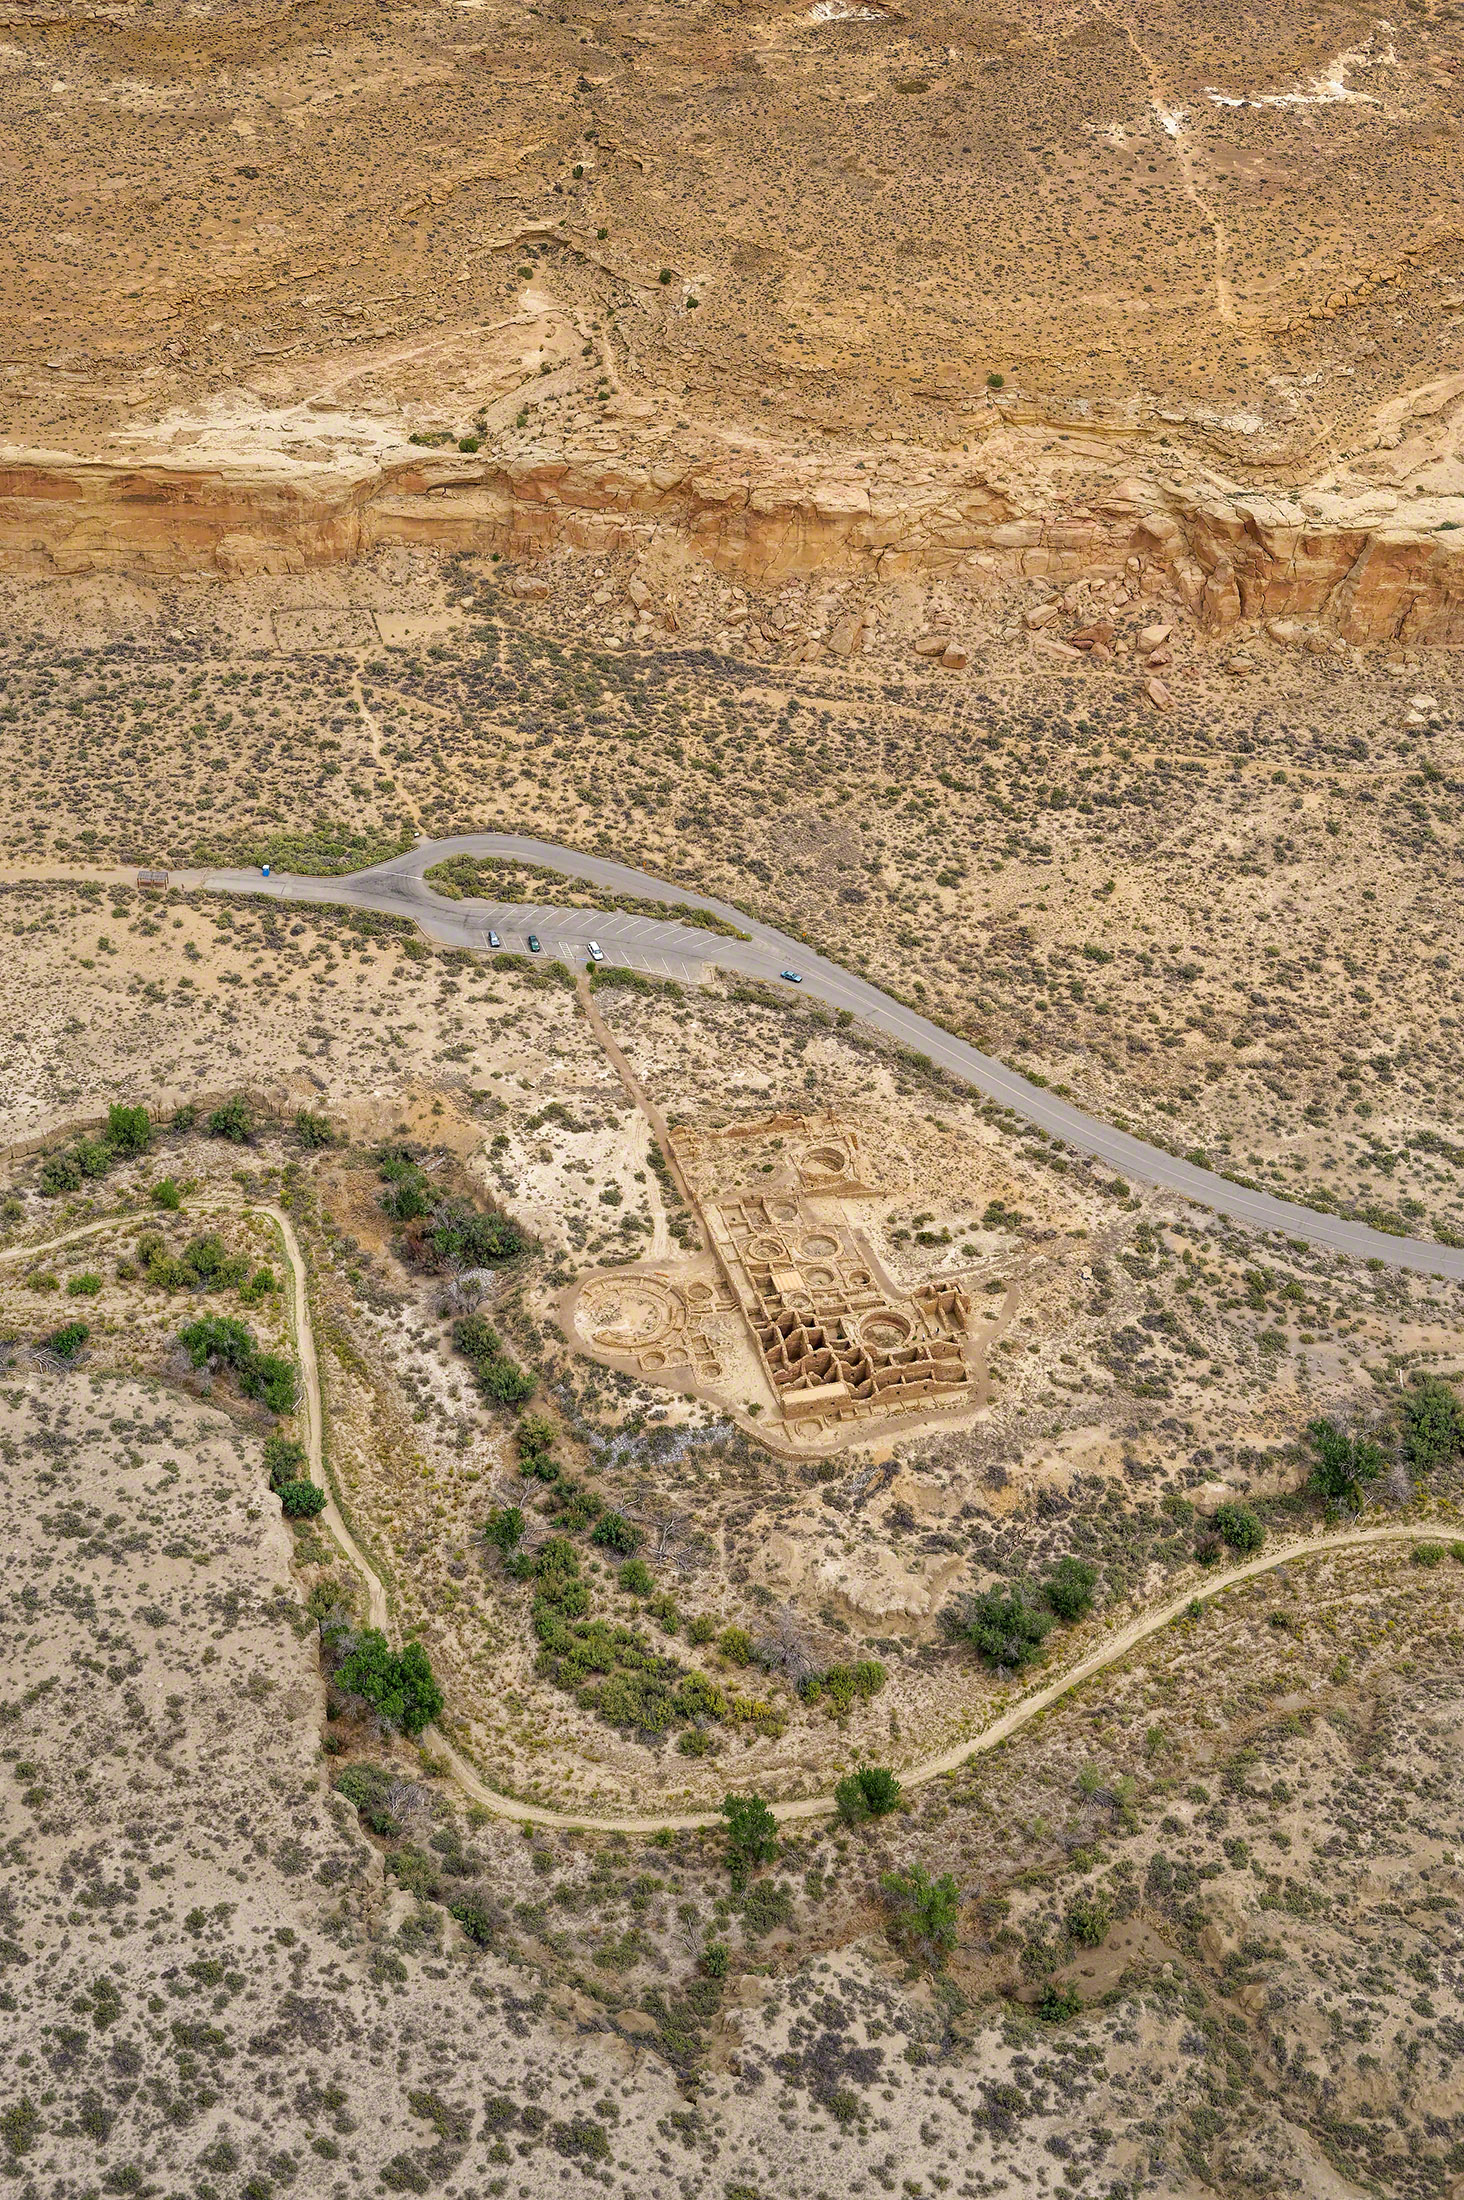 Oblique aerial view of Pueblo Del Arroyo along Chaco Wash in Chaco Canyon, looking north in midday light. This view is an attempt to rephotograph the 1929 aerial photograph by Charles Lindbergh, negative #130199.